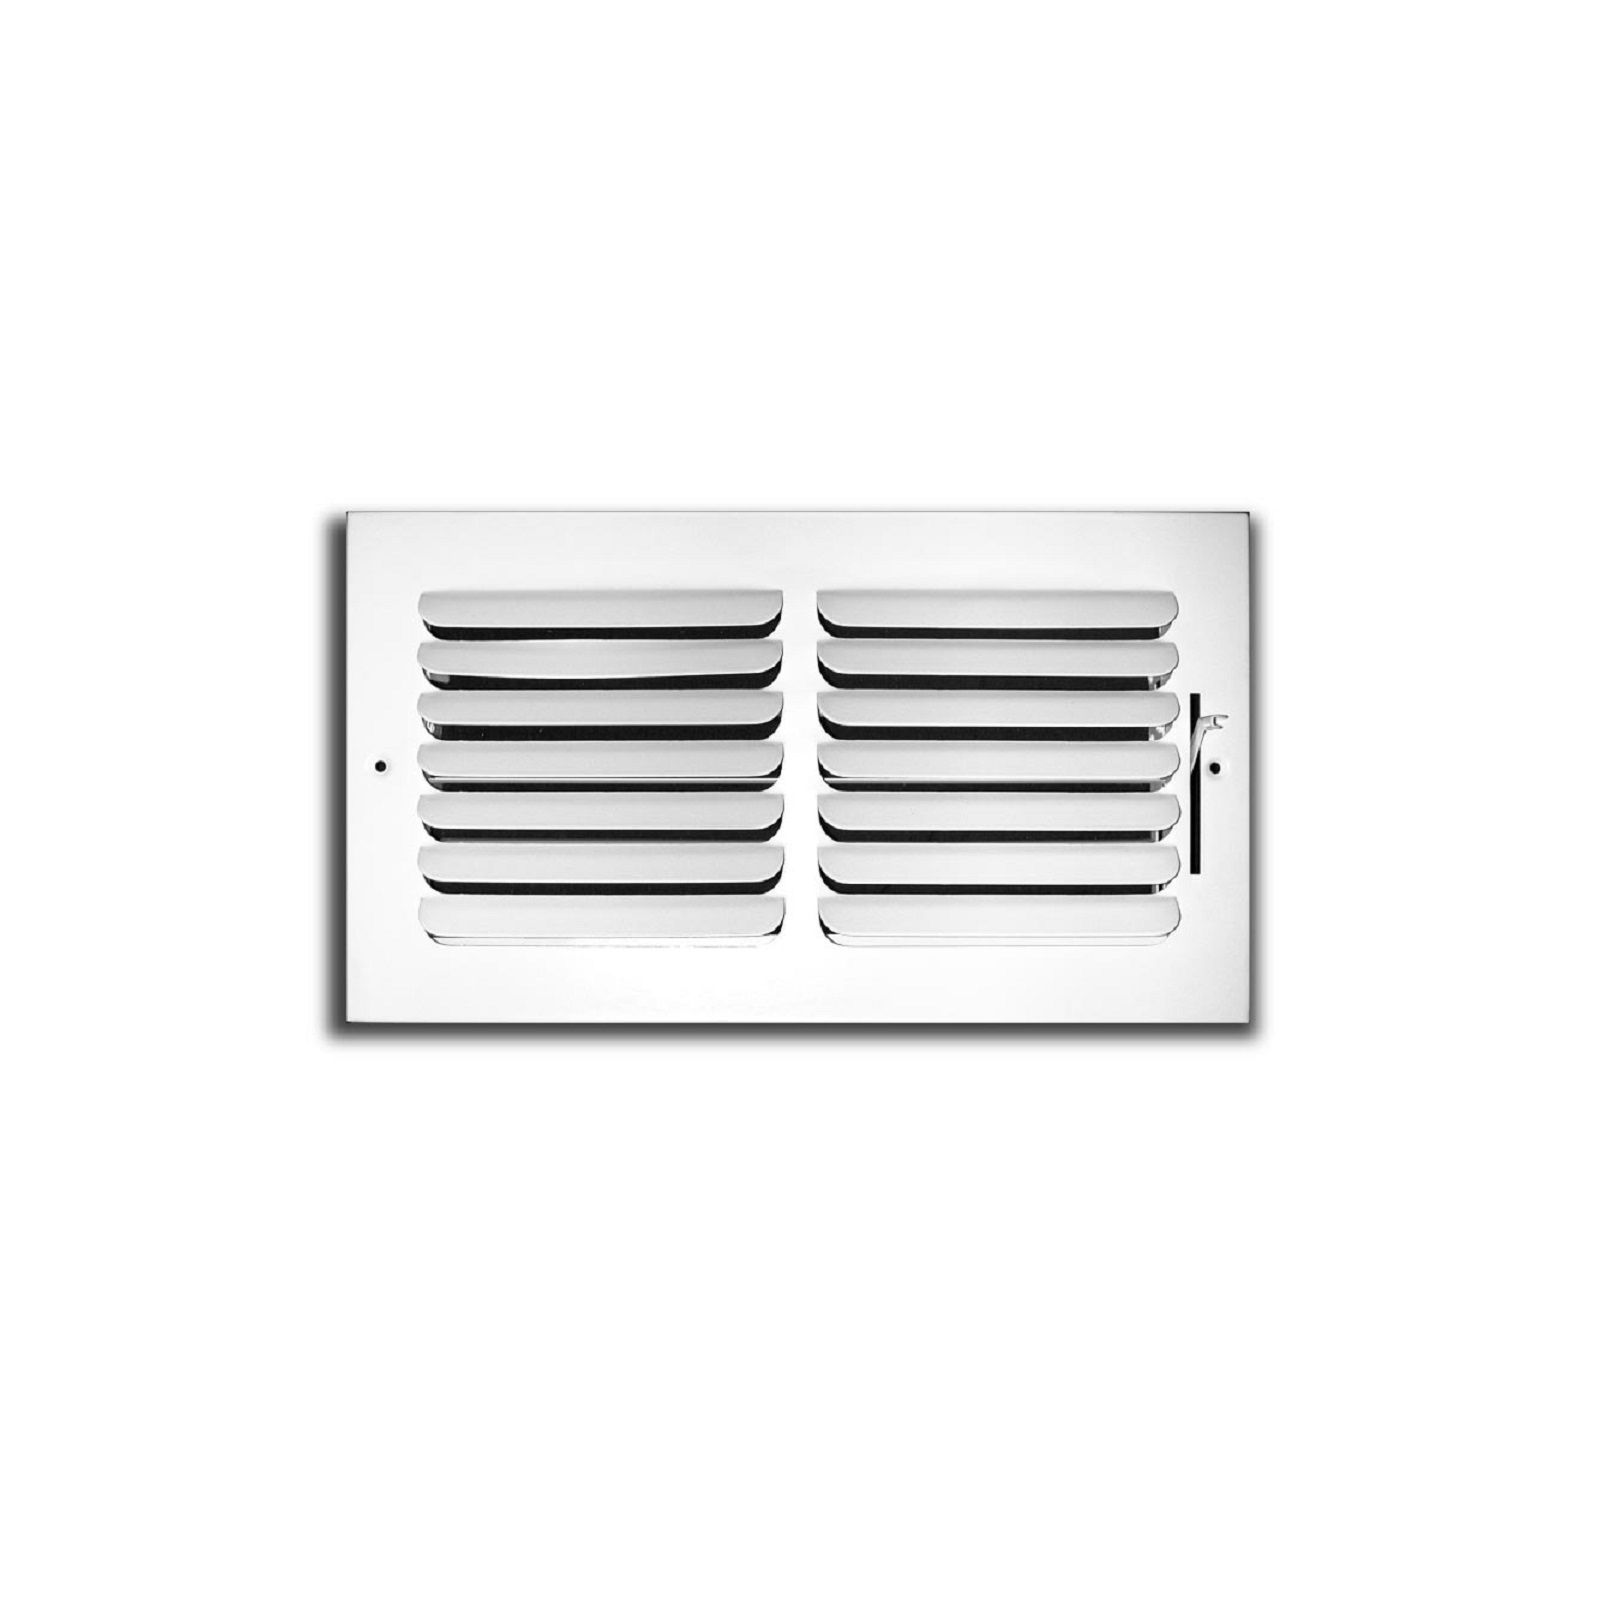 "TRUaire 401M 16X06 - Fixed Curved Blade Wall/Ceiling Register 401M With Multi Shutter Damper, 1-Way, White, 16"" X 06"""